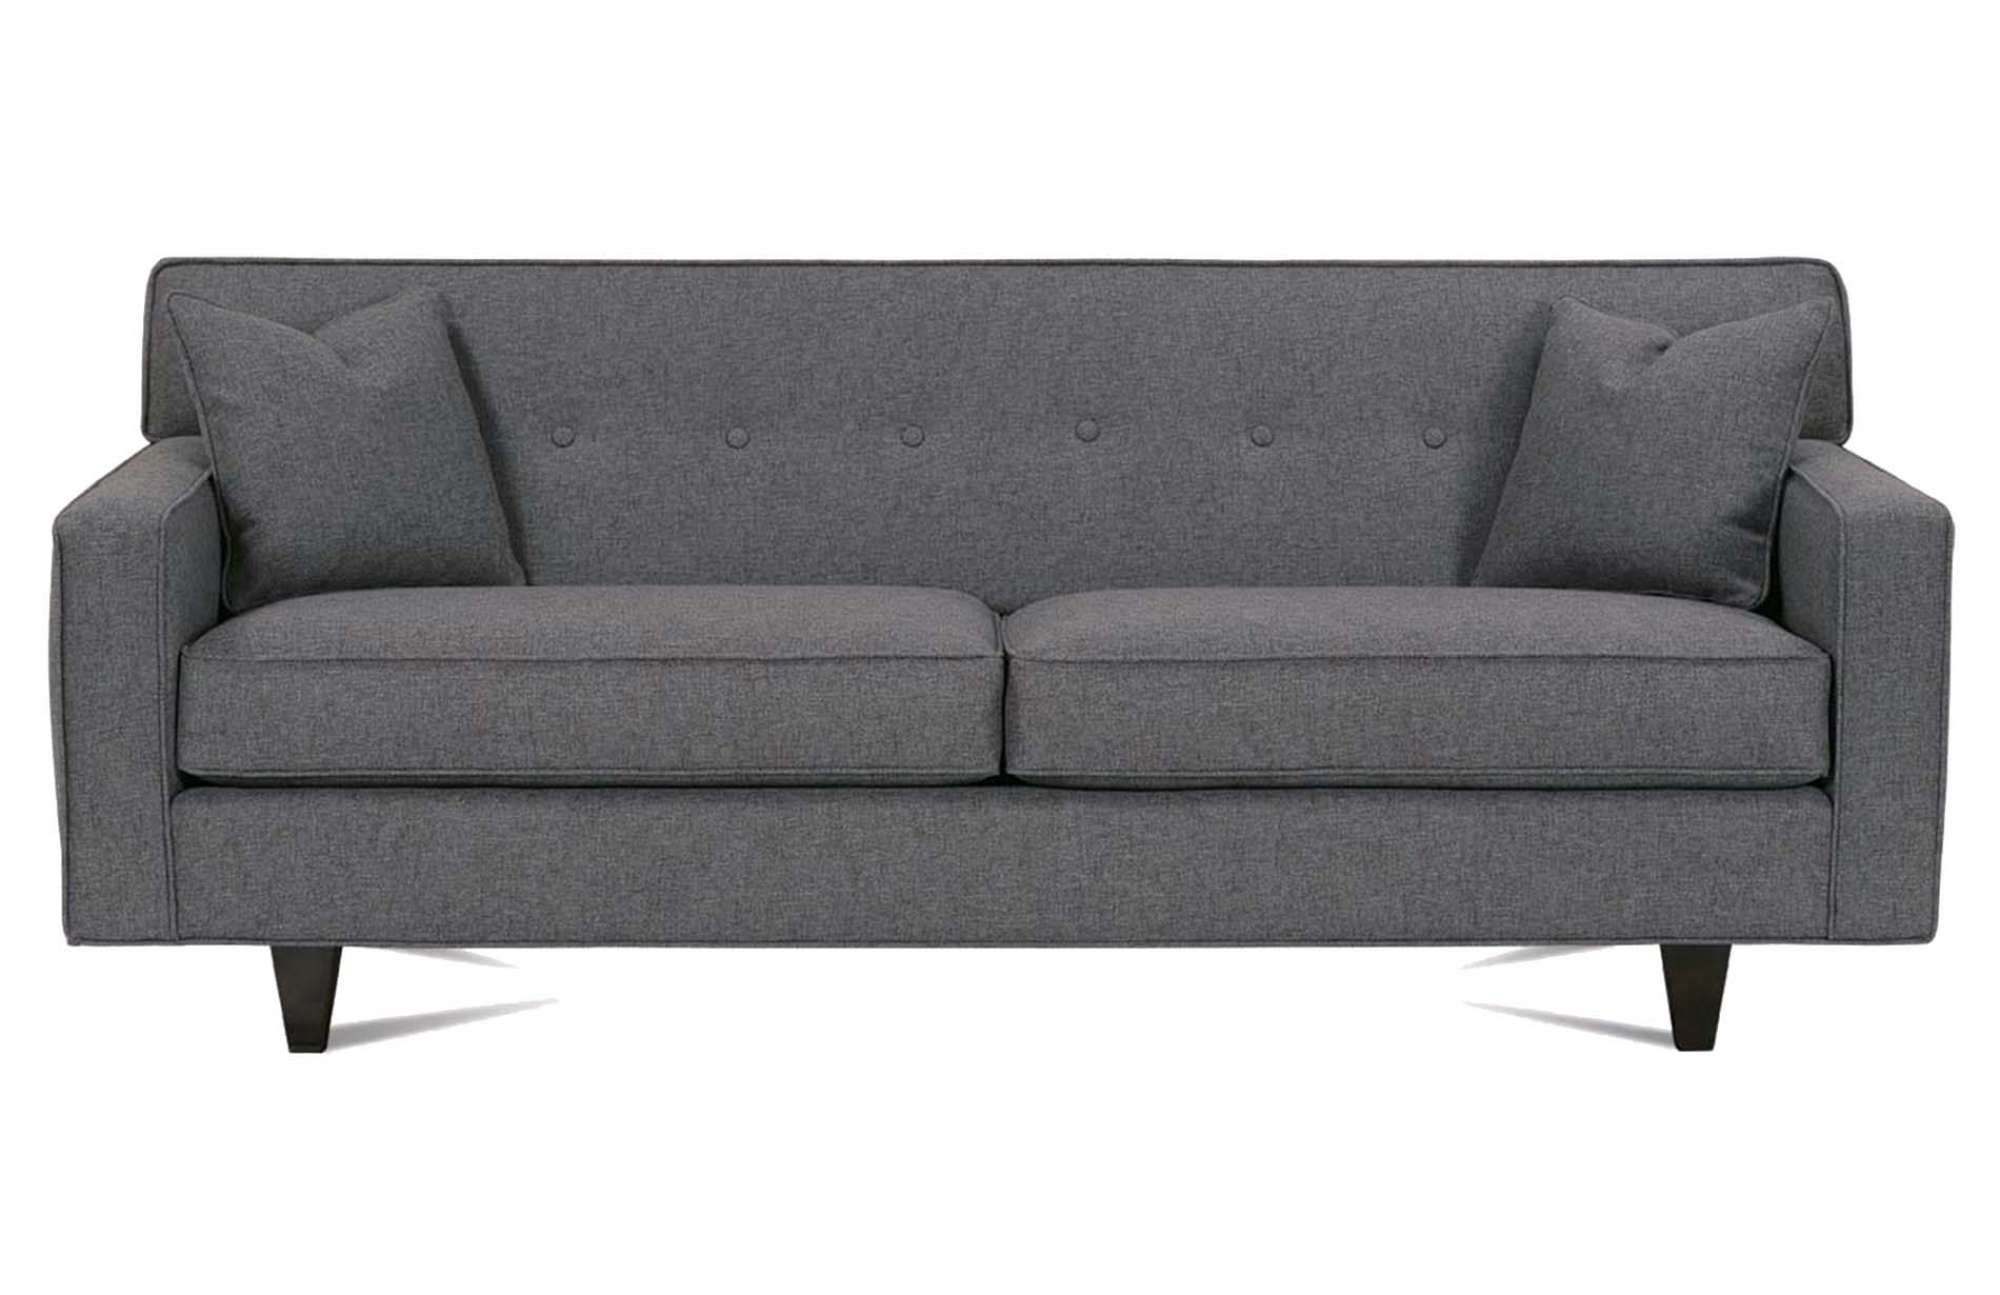 The Dorset 88 Sofa Is A Modern Luxury Design That Places An Emphasis On Seating Space The